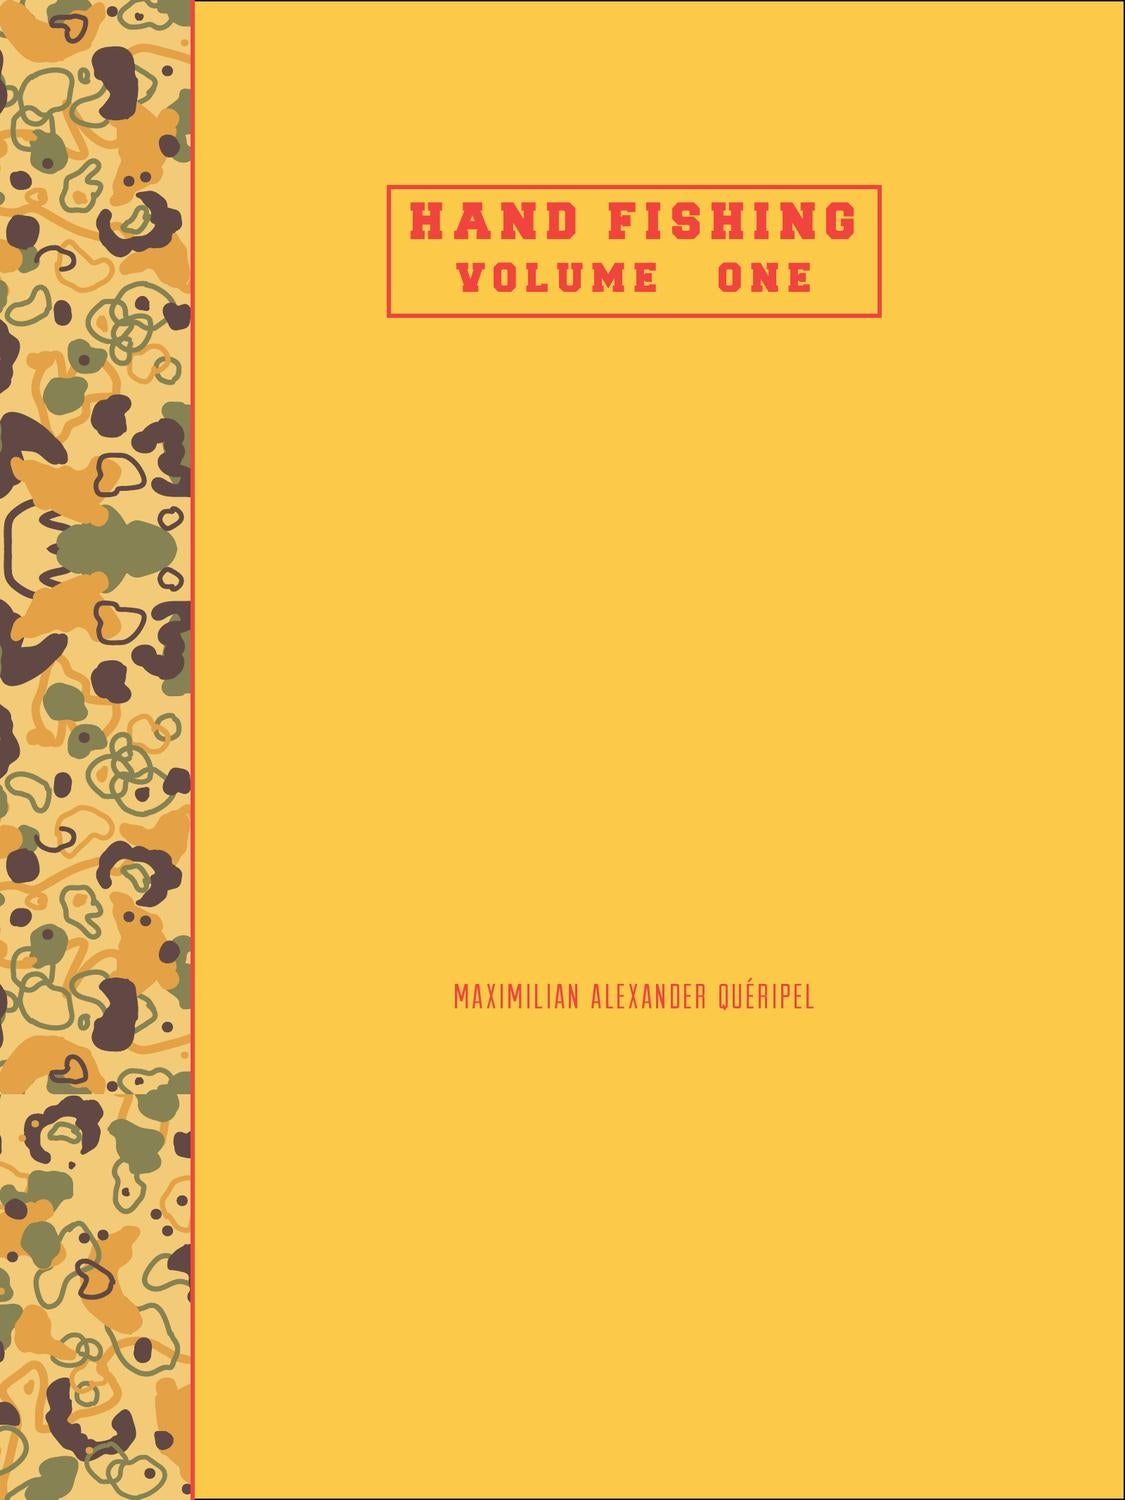 Handfishing Vol 1 by Maximilian Queripel - issuu